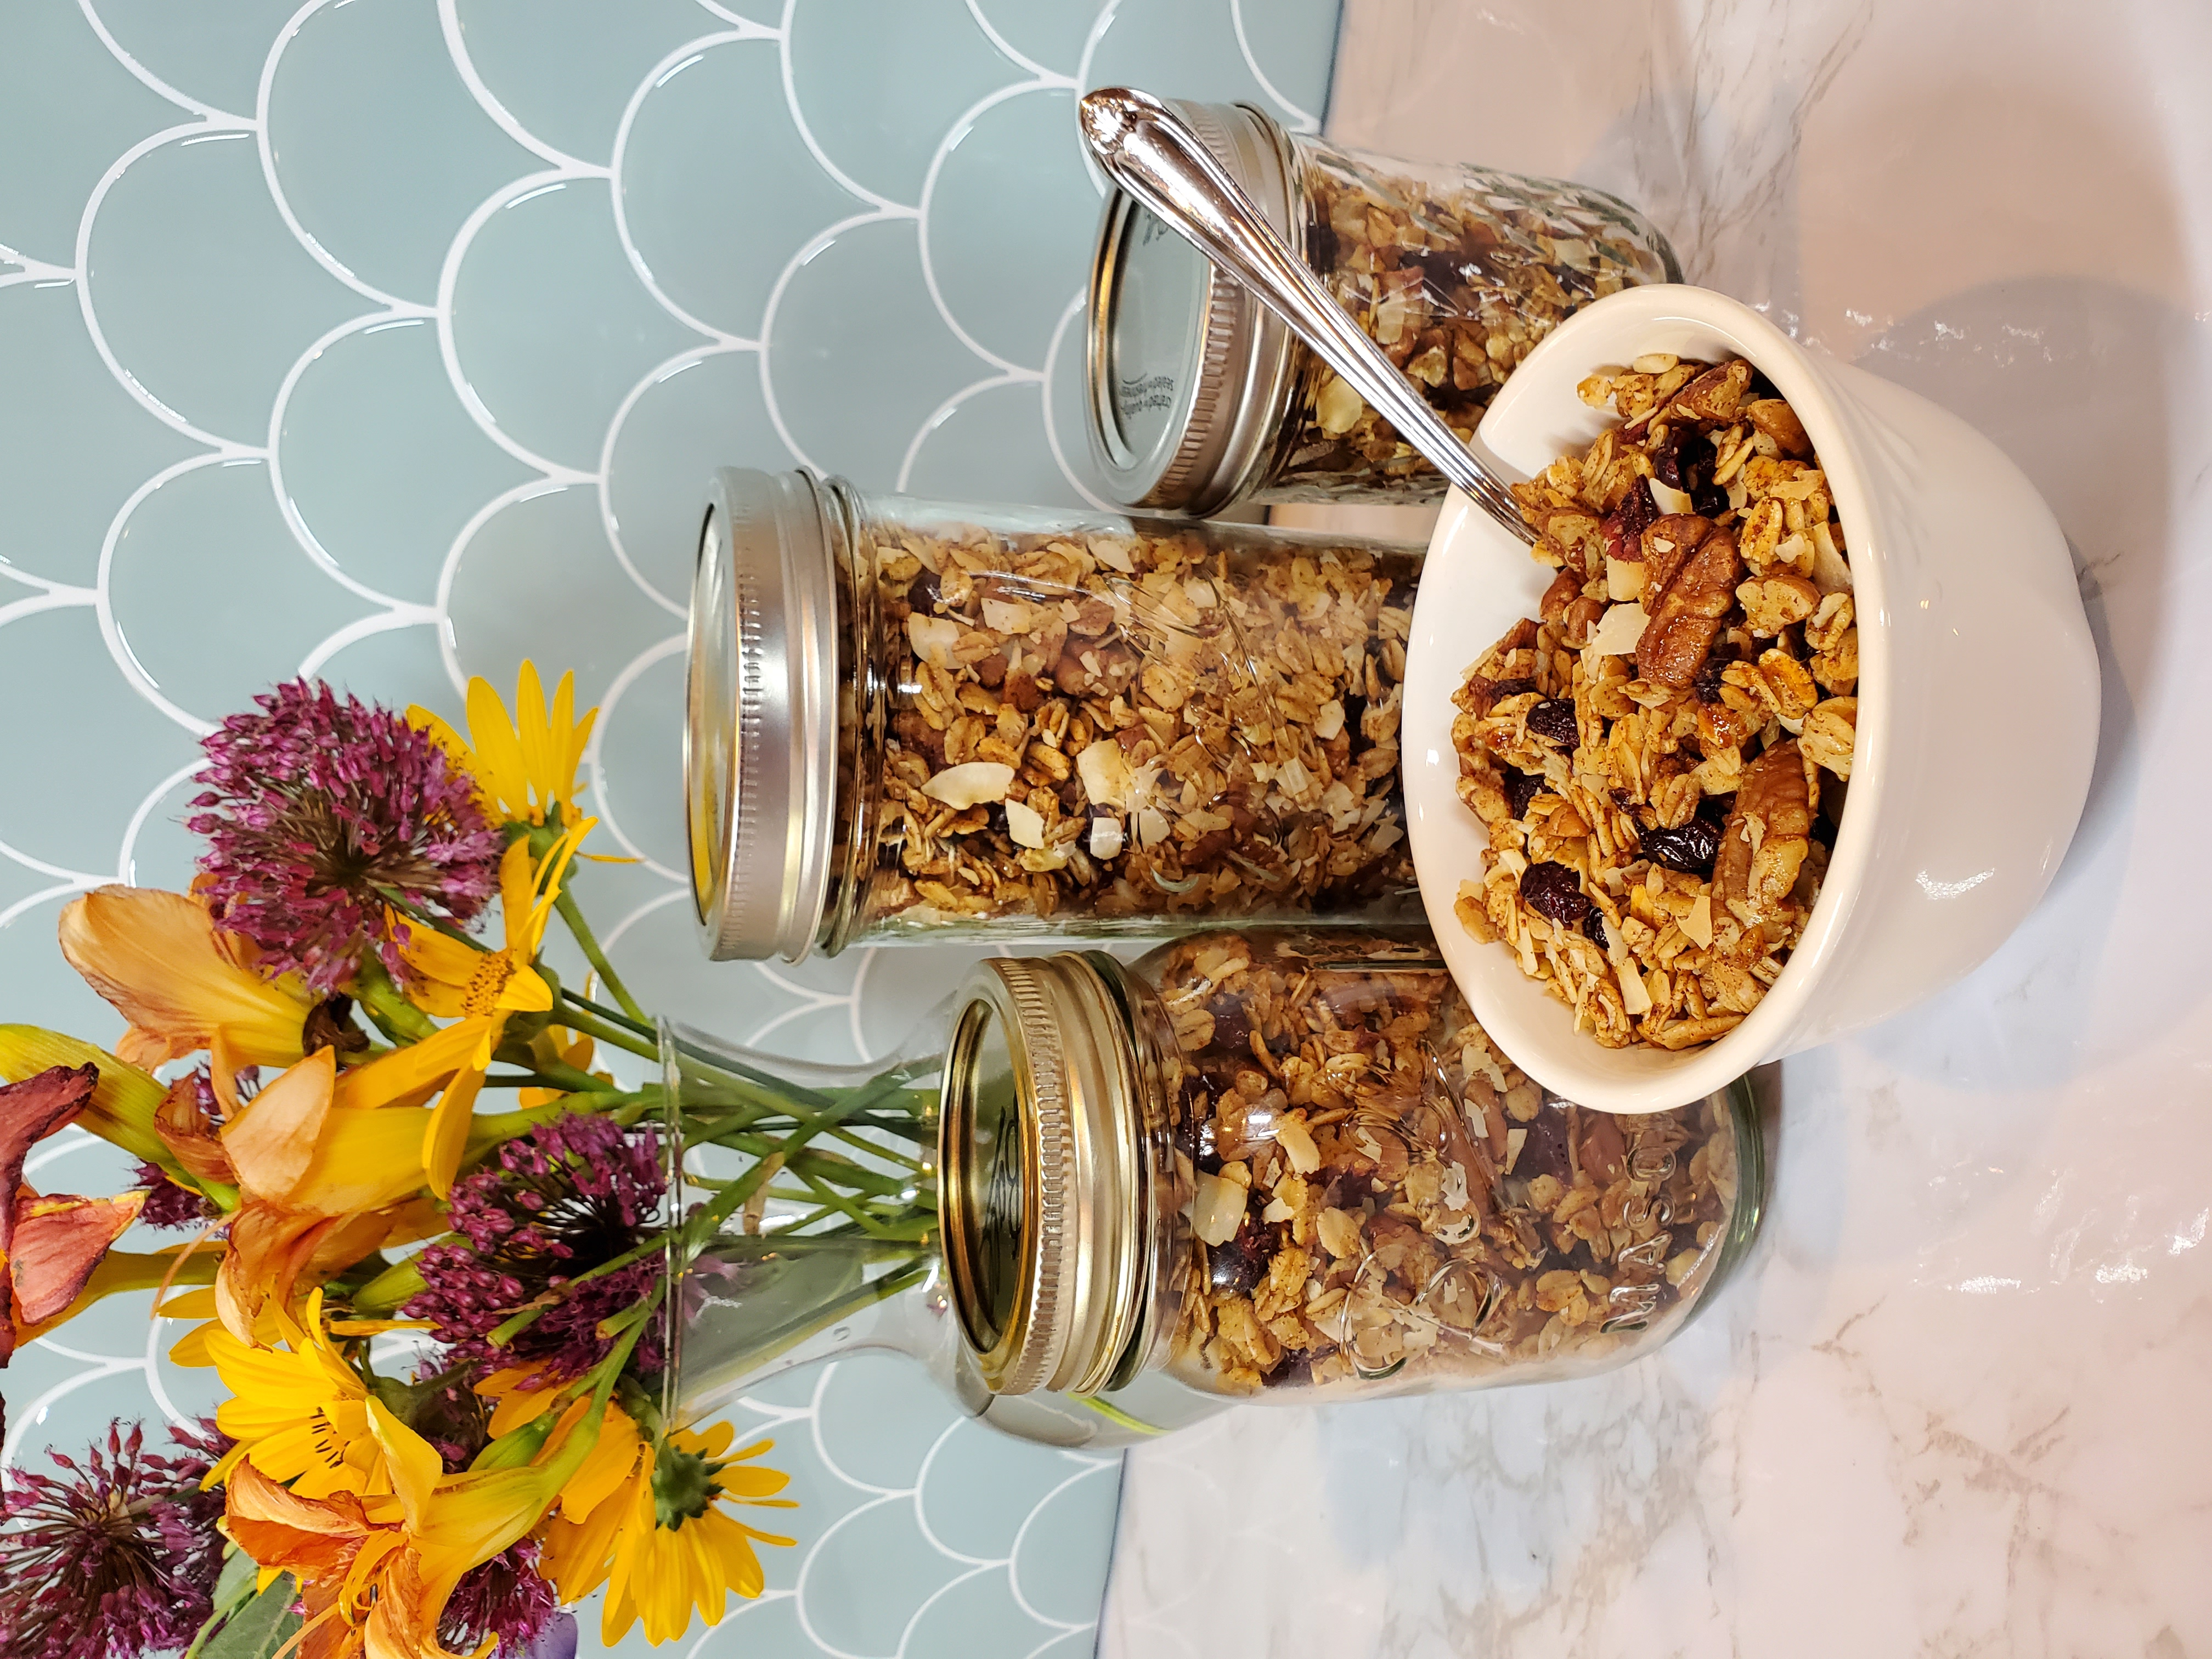 Three jars of granola sit behind a bowl of granola. Bits of pecans and craisins are visible. There is a siler spoon sticking out of the bowl and there is a vase full of flowers behind the scene, yellow, pink and purple.